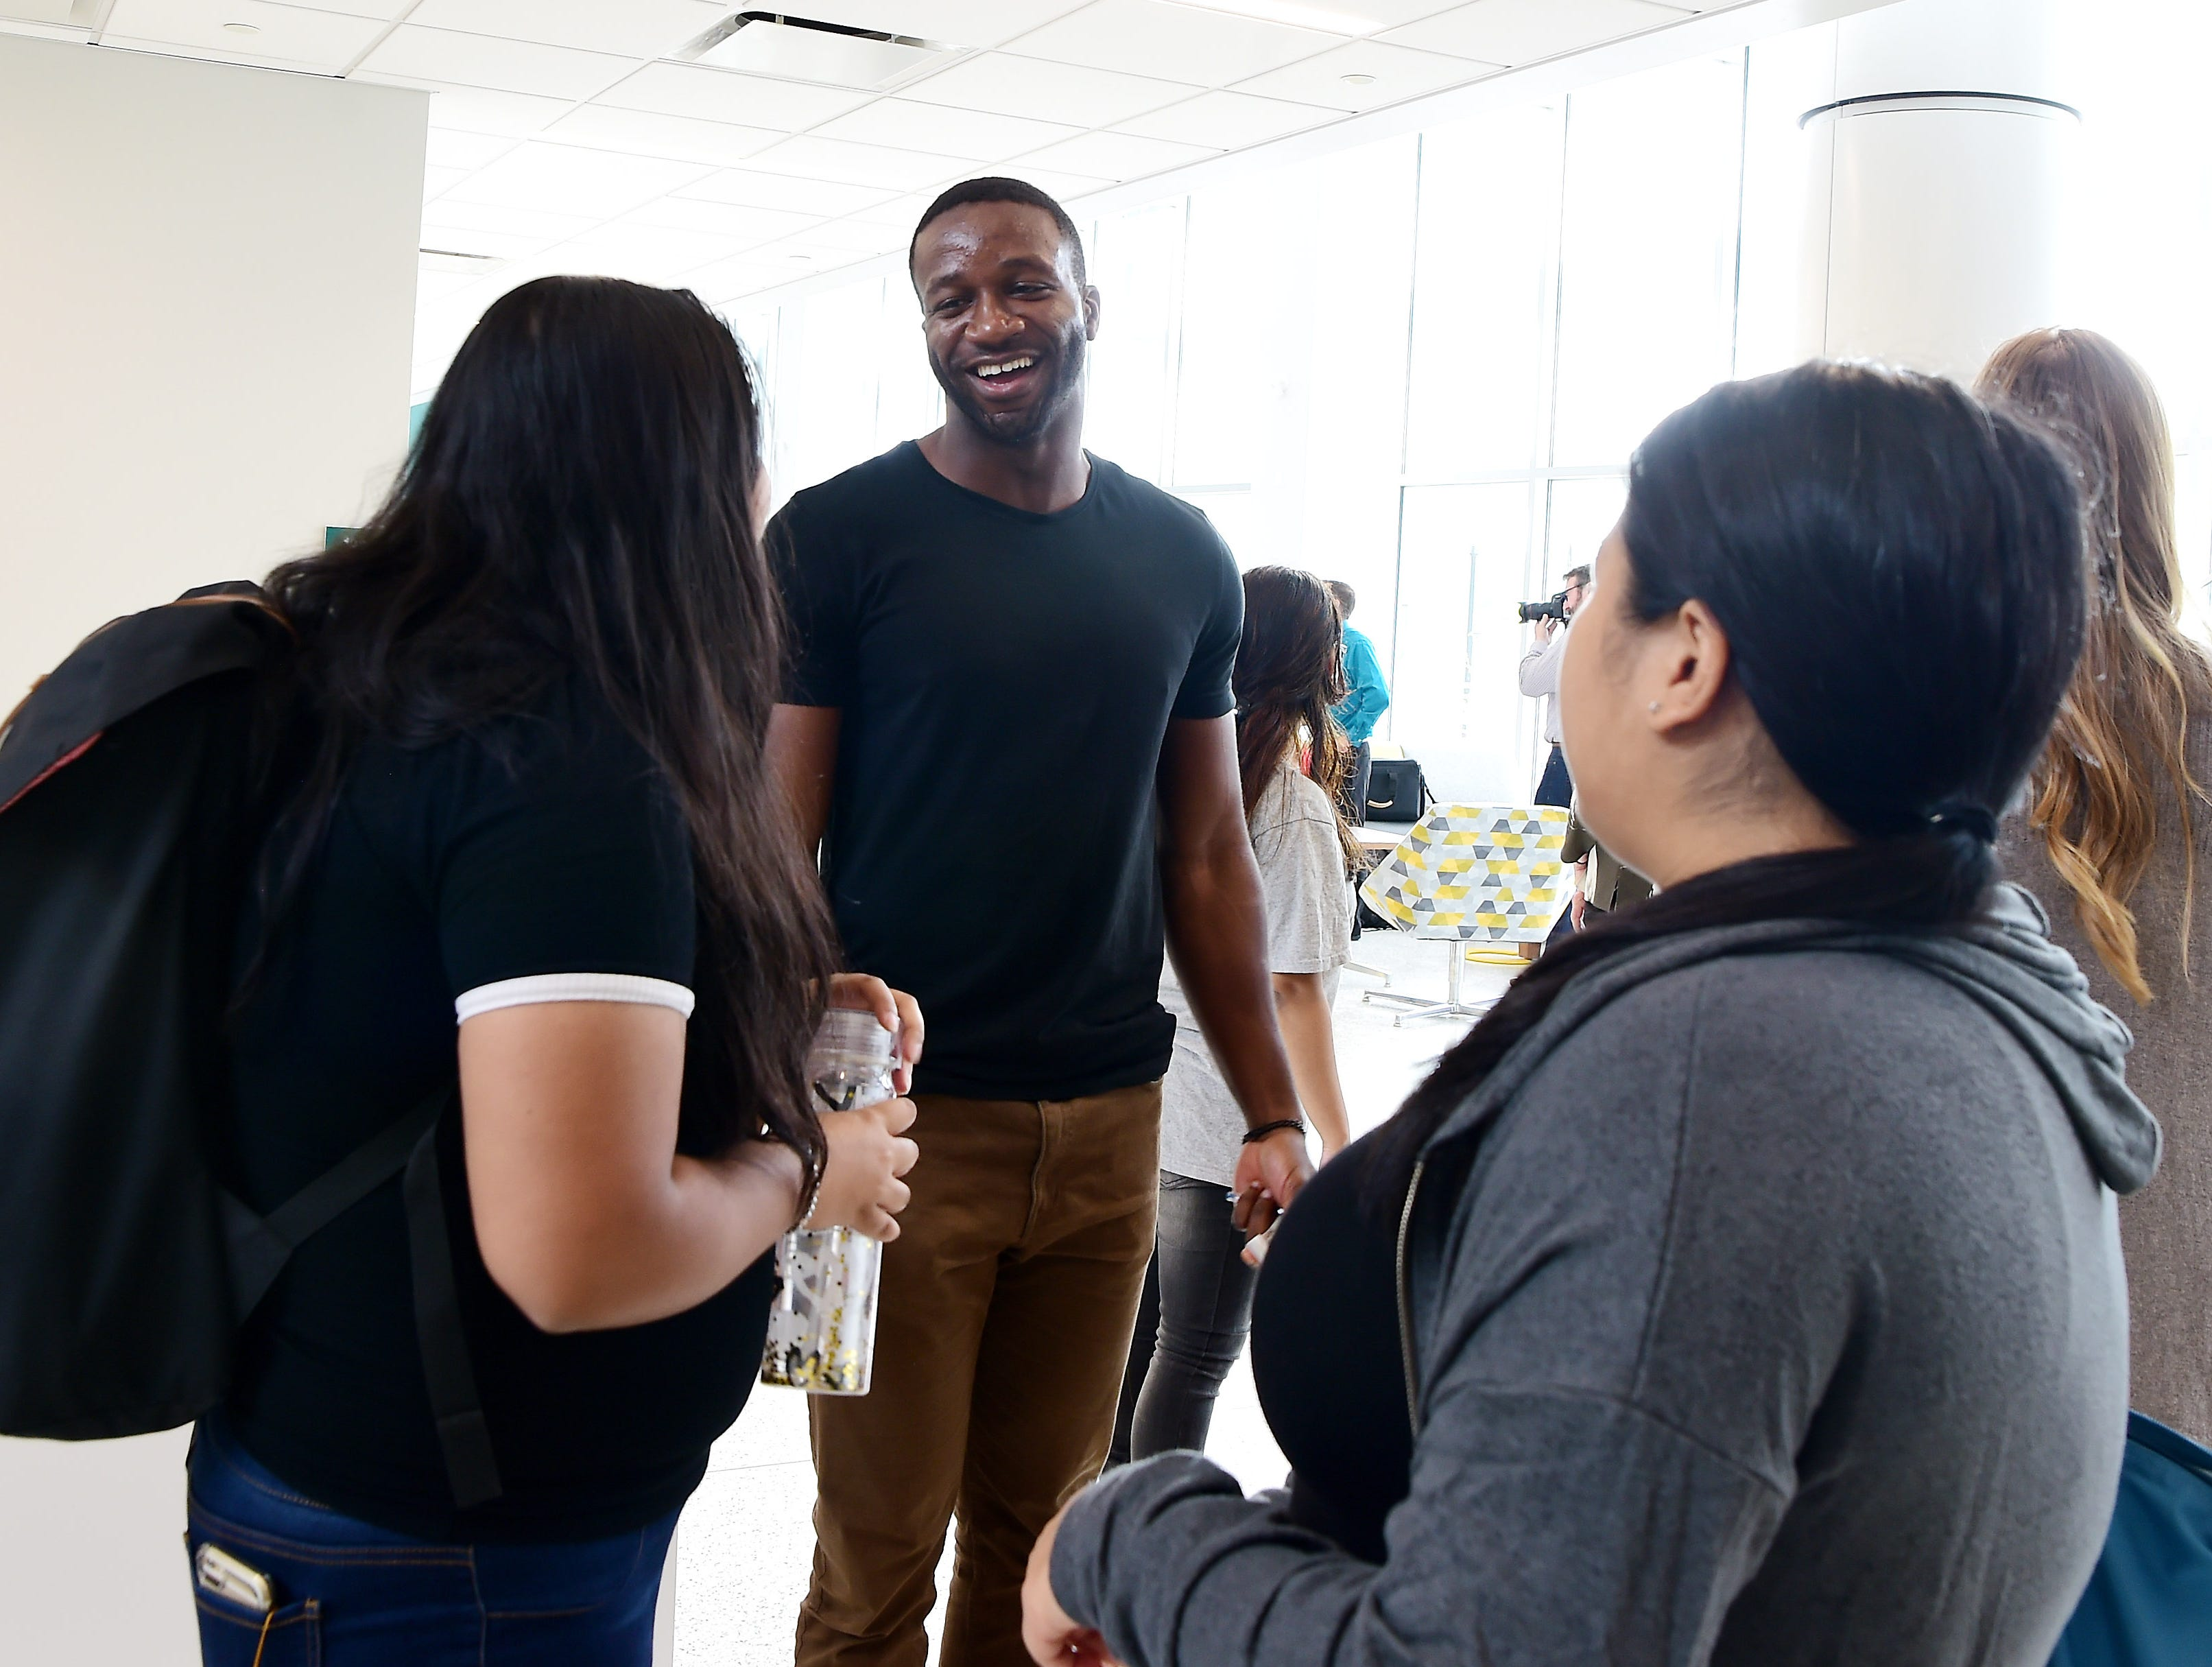 Biomedical engineering PhD student Ositomiwa Osipitan of Albany chats with friends during the first day of classes at Binghamton University's new School of Pharmacy and Pharmaceutical Sciences, which officially opened on Wednesday, August 22, 2018. The opening of the academic building at 96 Corliss Ave., Johnson City marks the first phase of the transformation of the former industrial section of Johnson City into the UniversityÕs Health Sciences Campus. Work will soon begin on the adjacent former Endicott Johnson shoe box factory, where the university will house its nursing program. Expected completion of the estimated $30 million renovation of the 48 Corliss Ave. nursing complex is August 2020. The School of Pharmacy and Pharmaceutical Sciences will have approximately 390 students when fully enrolled after four years Ð 360 in the PharmD program and an additional 30 PhD students.